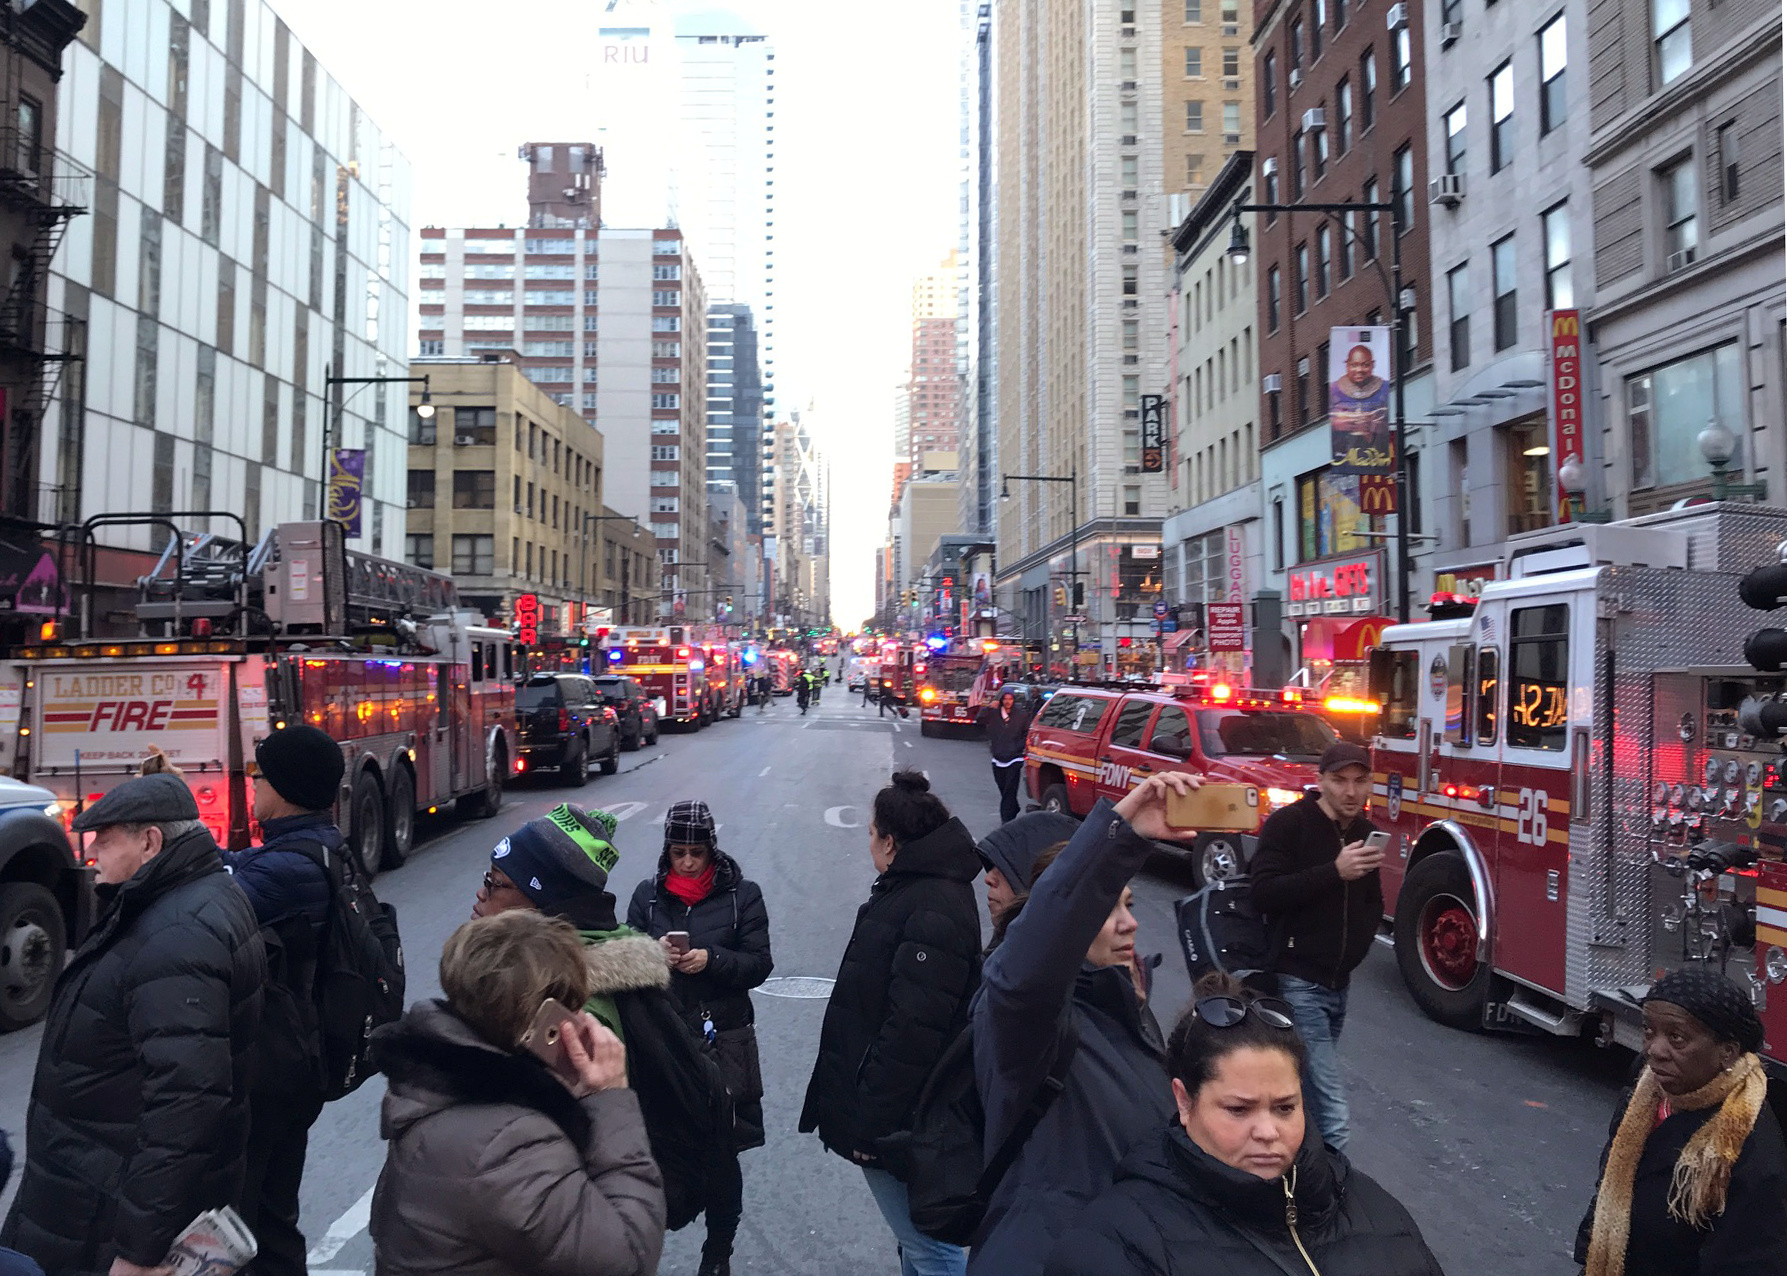 Police and fire crews block off the streets near the New York Port Authority in New York City, U.S. Dec. 11, 2017 after reports of an explosion.